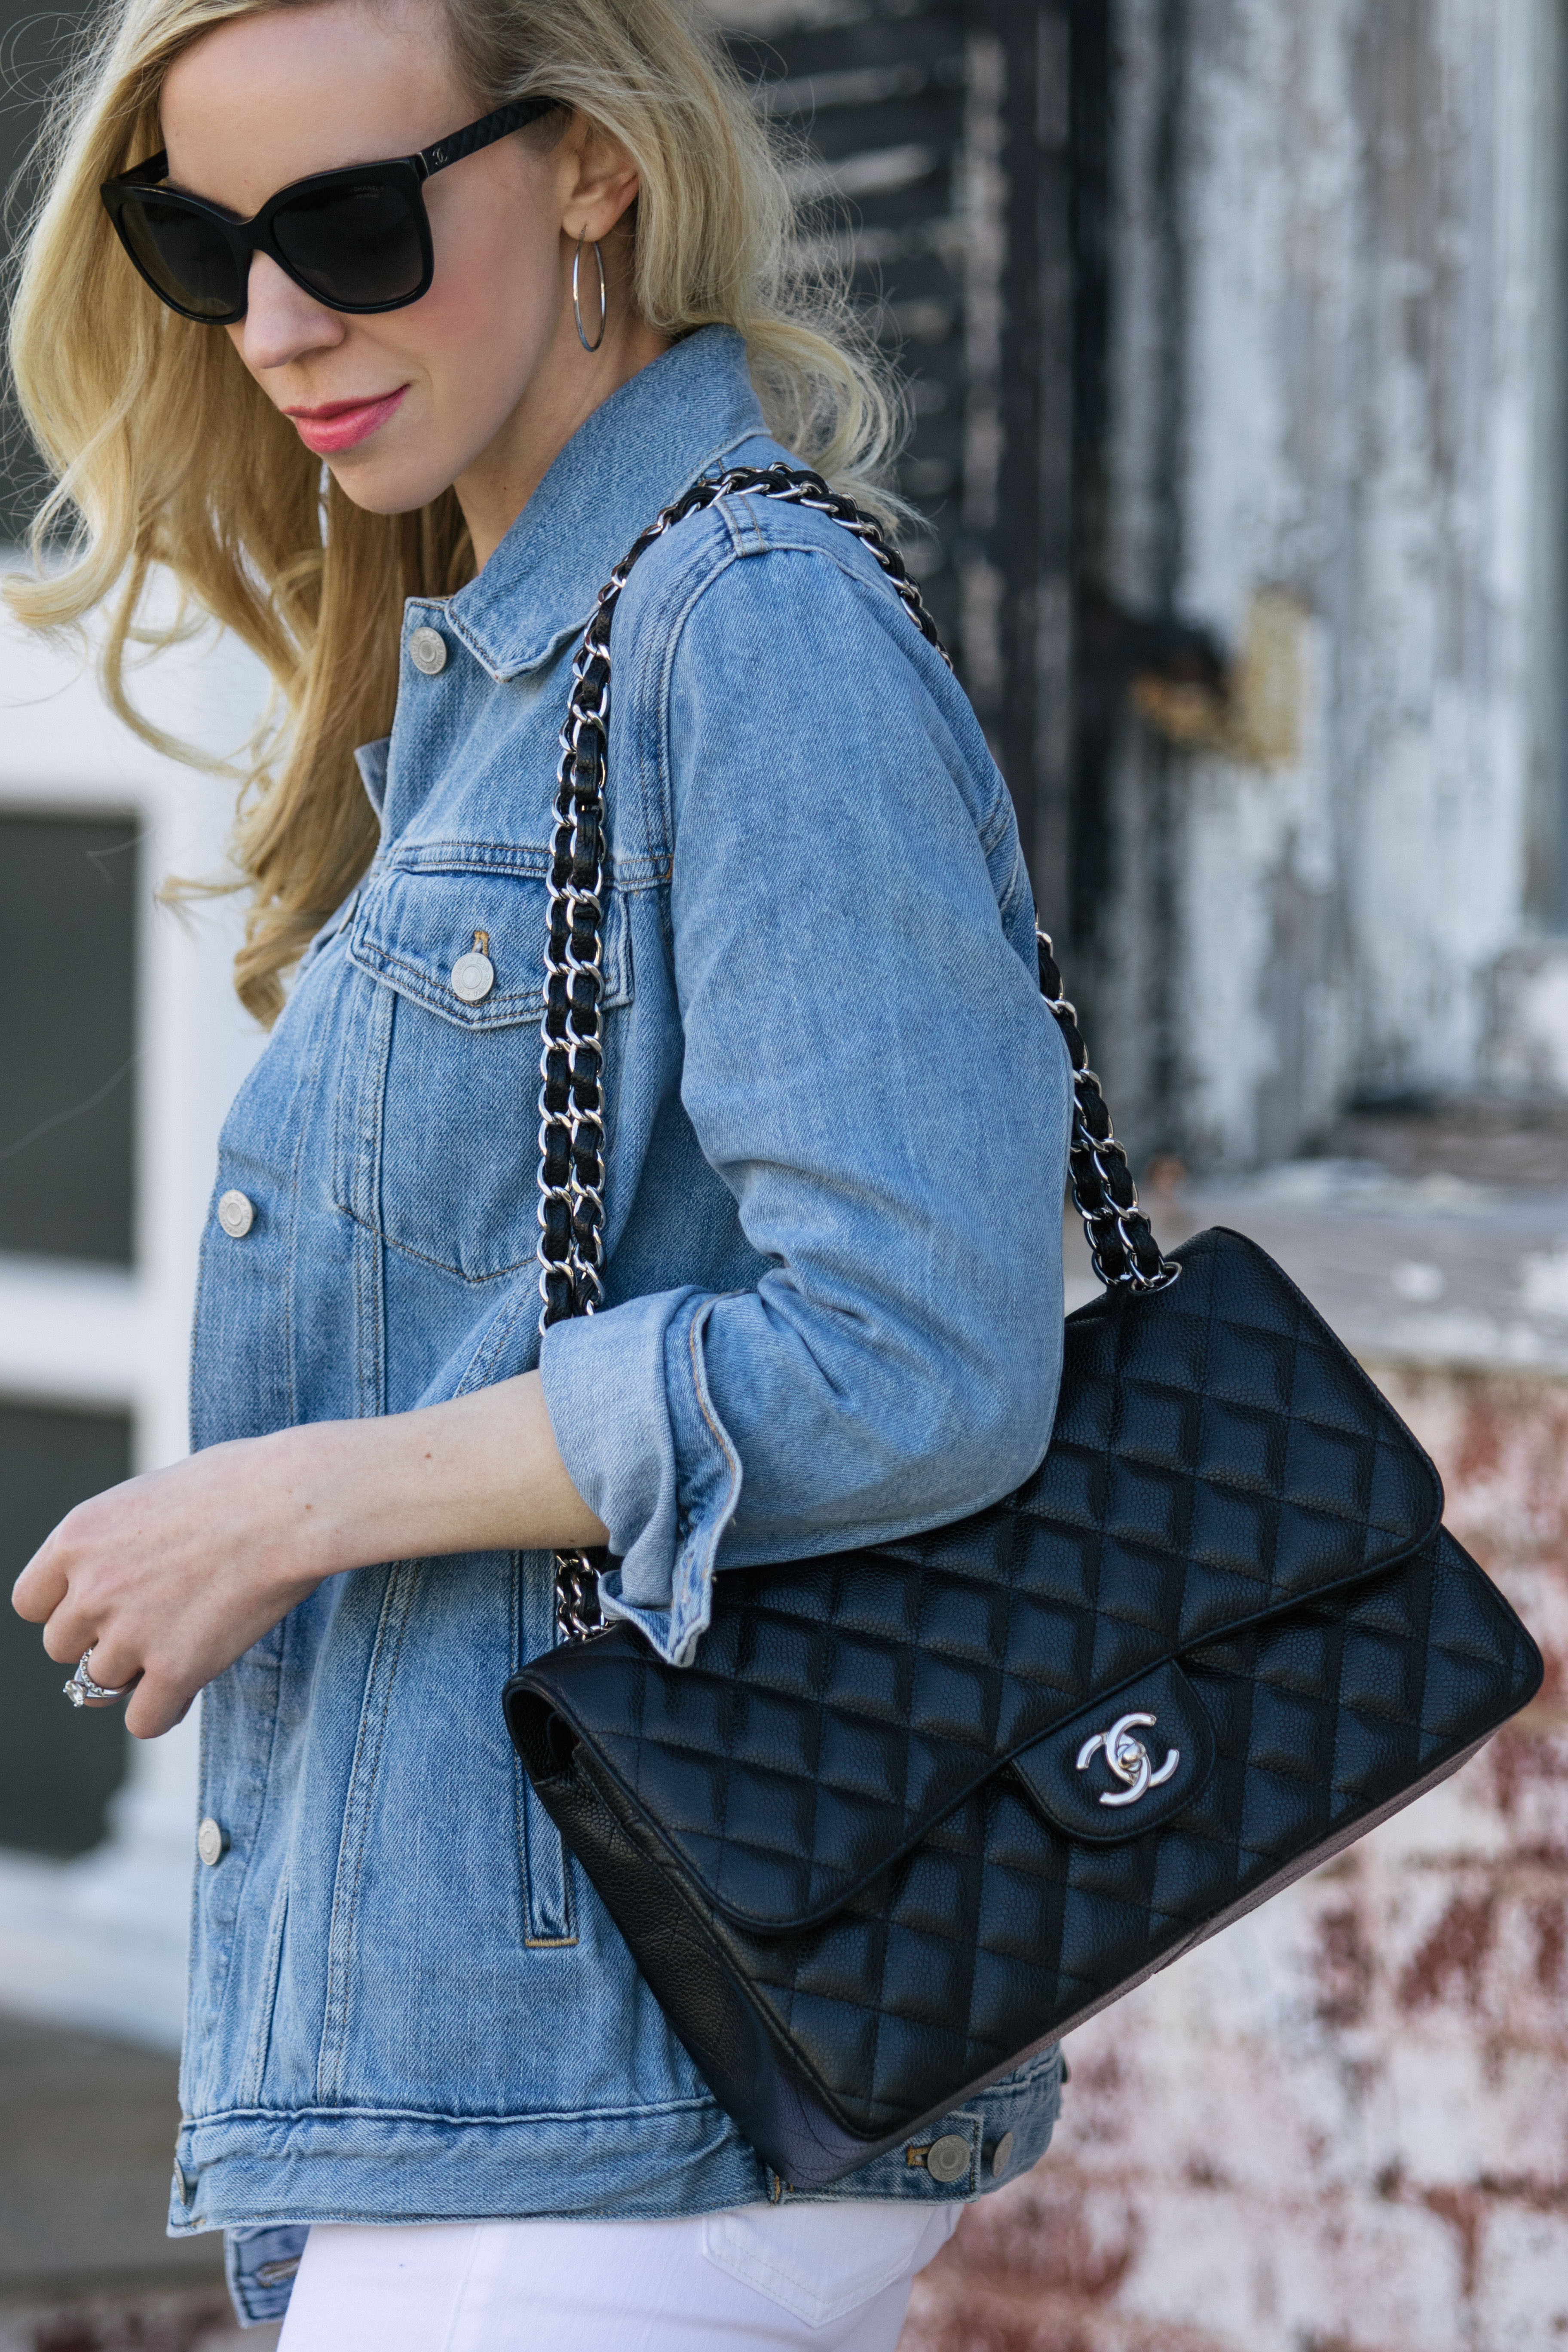 d4b426c7890d Chanel Jumbo bag black caviar with silver hardware, how to wear a long denim  jacket